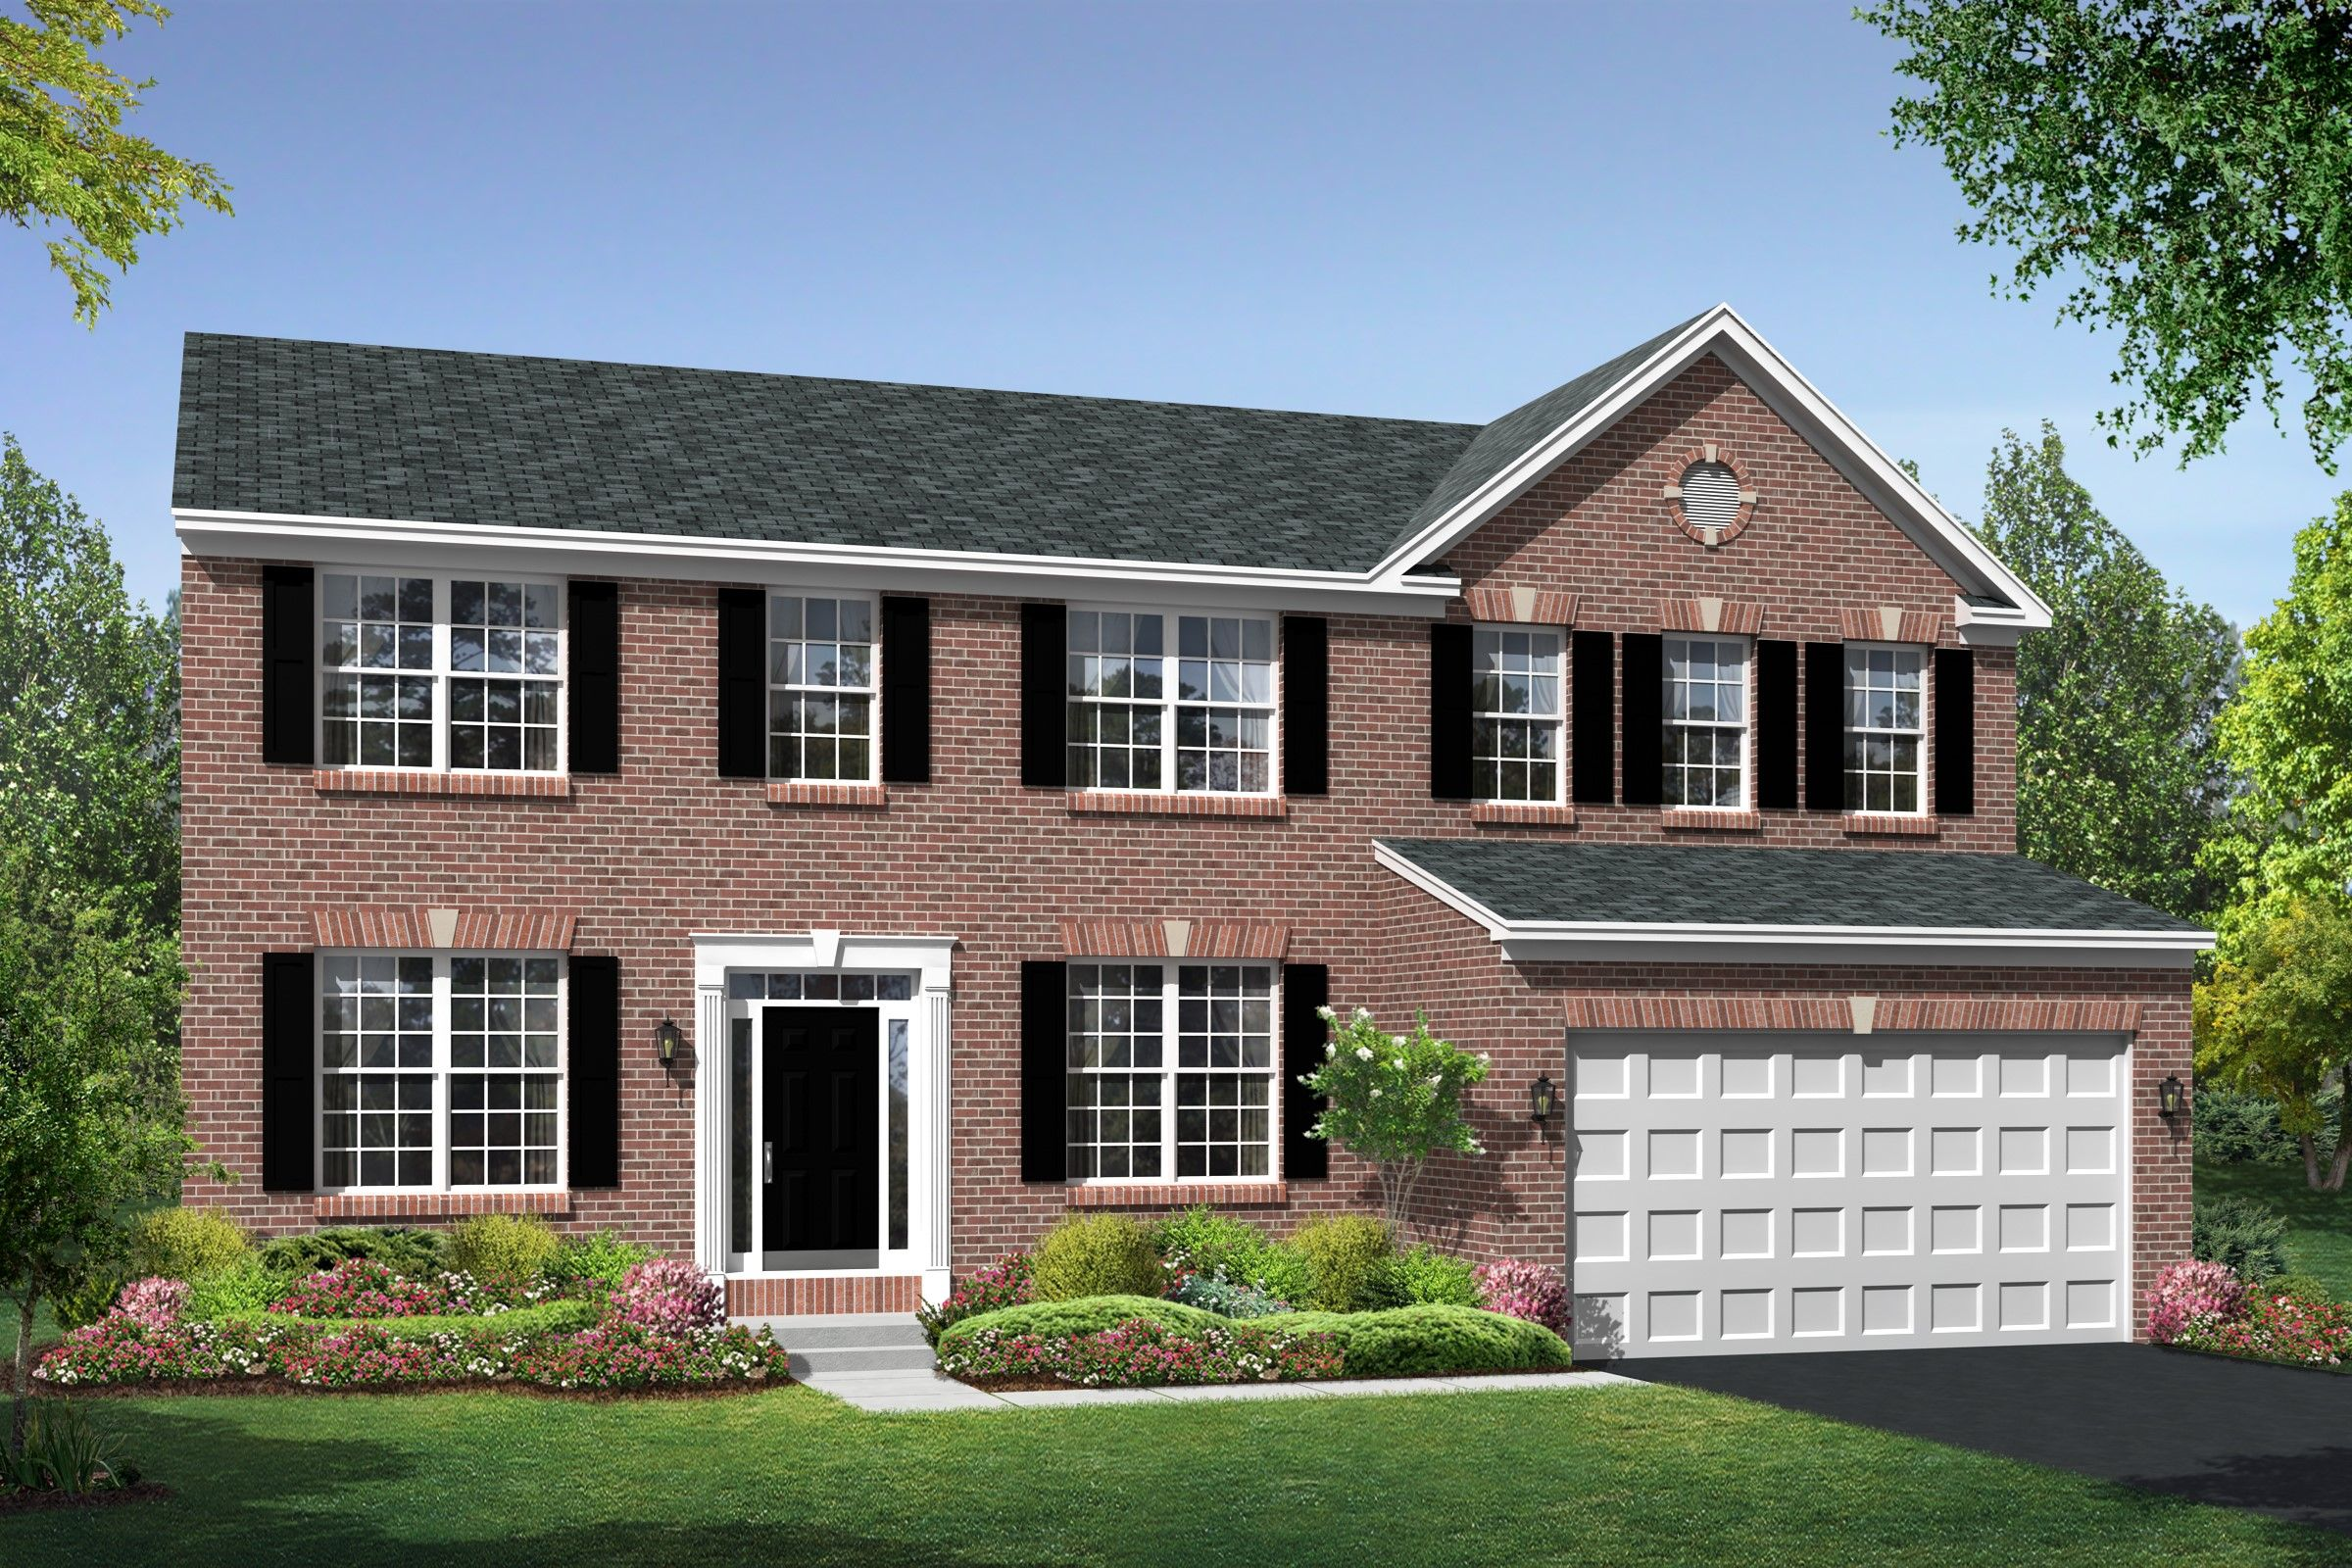 K hovnanian r homes cardinal view at eagles pointe for Modern homes for sale in maryland